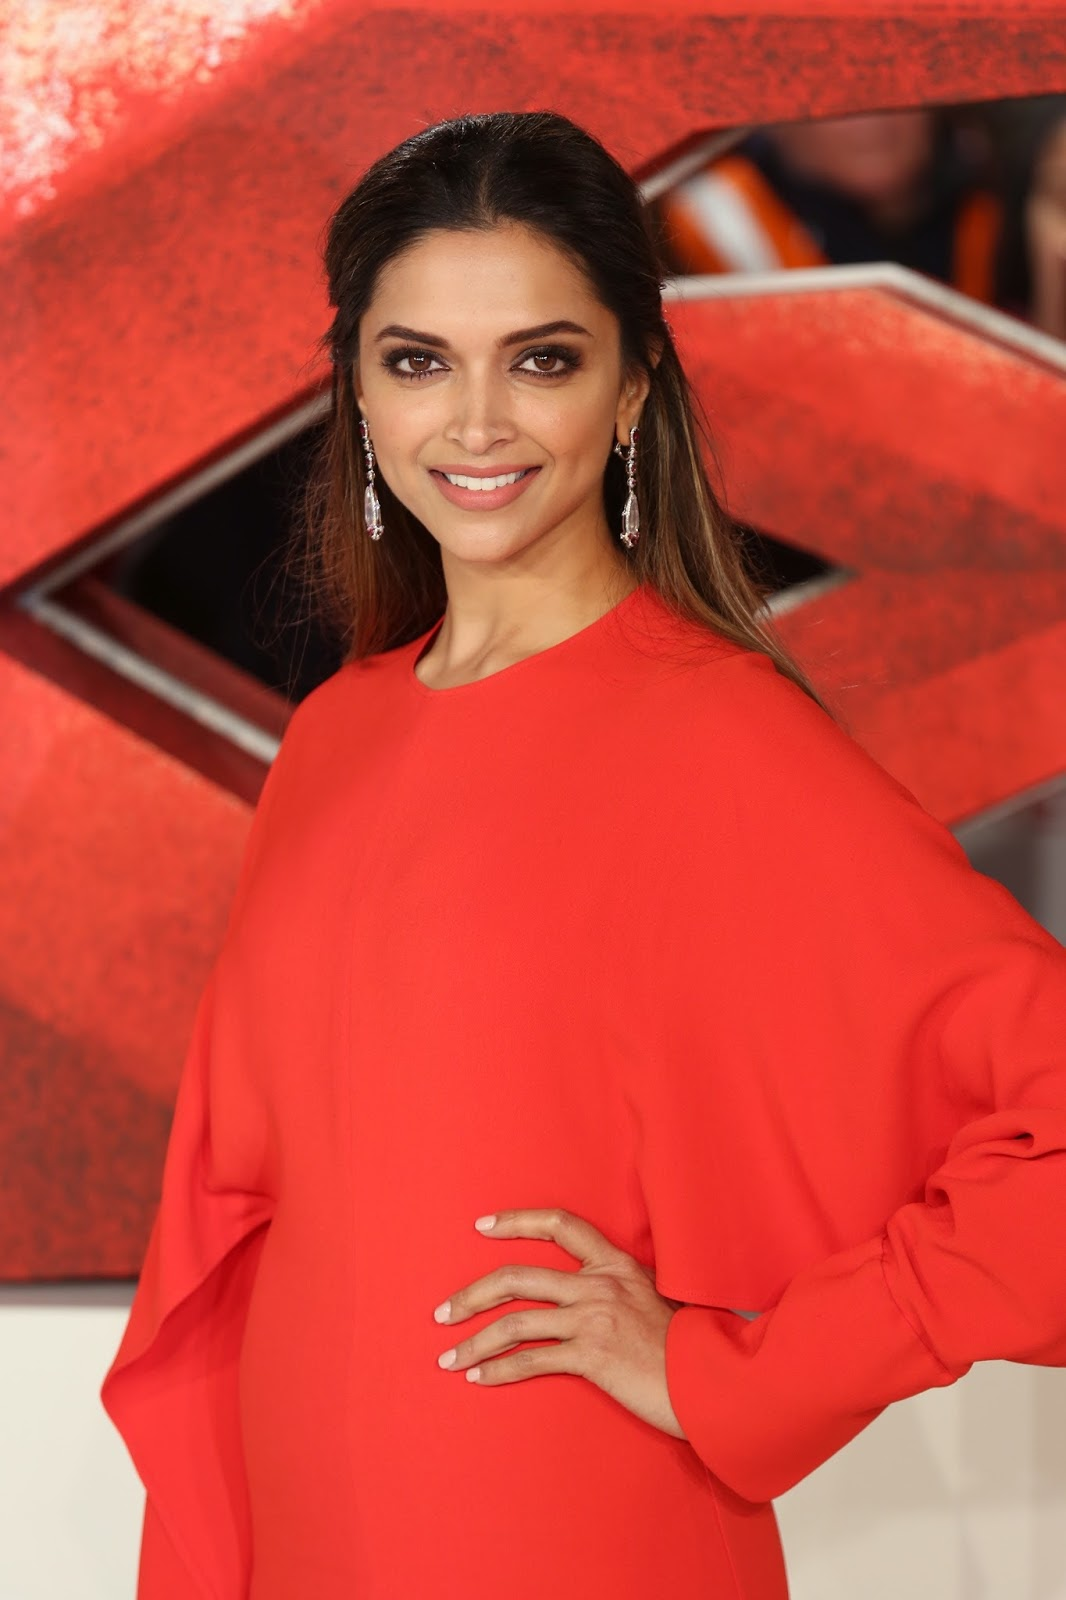 Deepika Padukone Looks Stunning In Red Dress At The ...